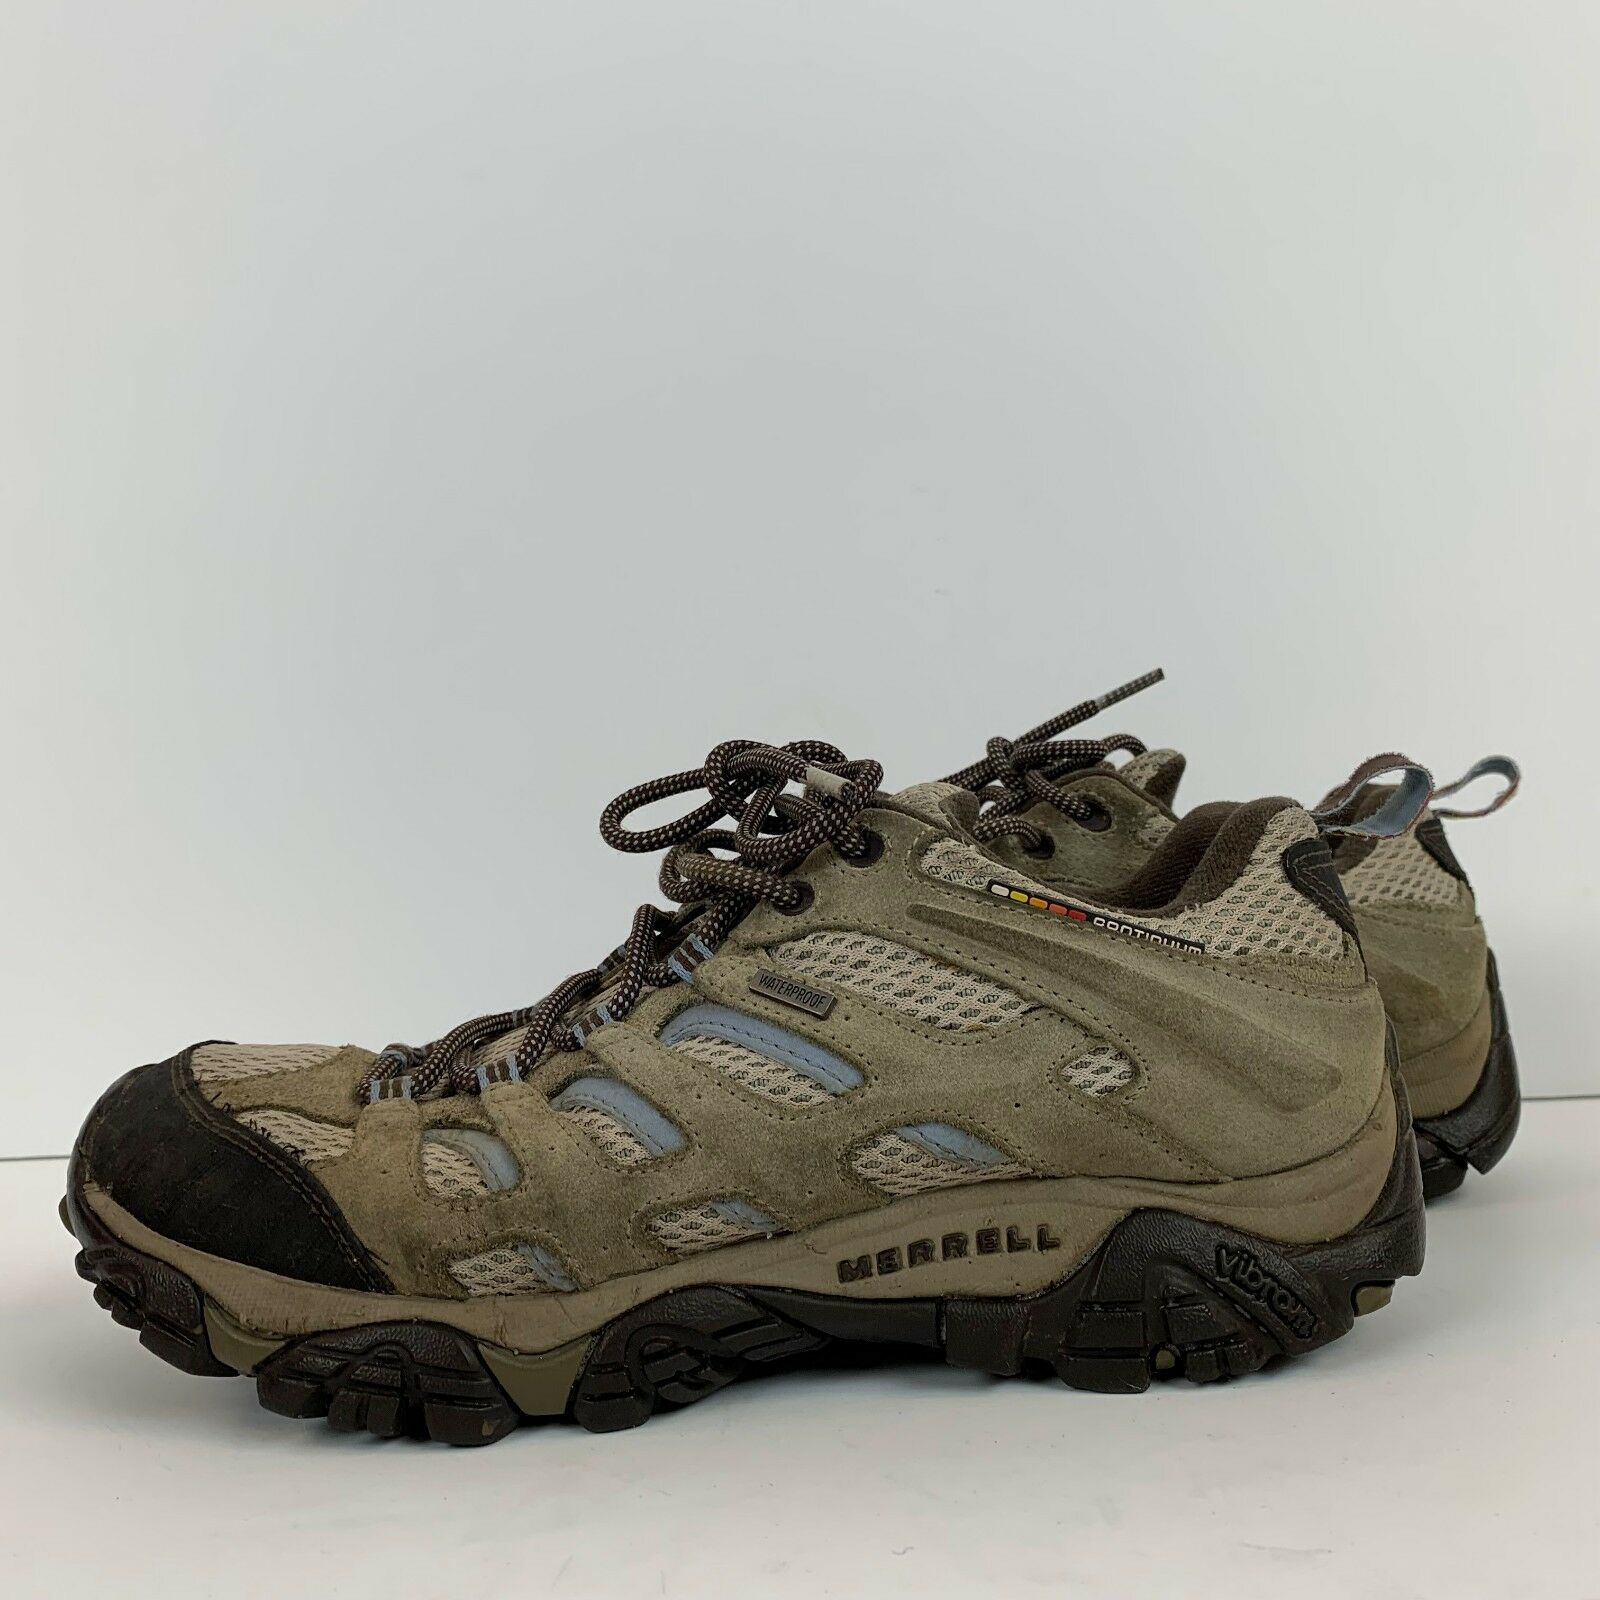 Merrell Womens Moab Ventilator Hiking shoes Size 9 Trail Vibram Waterproof